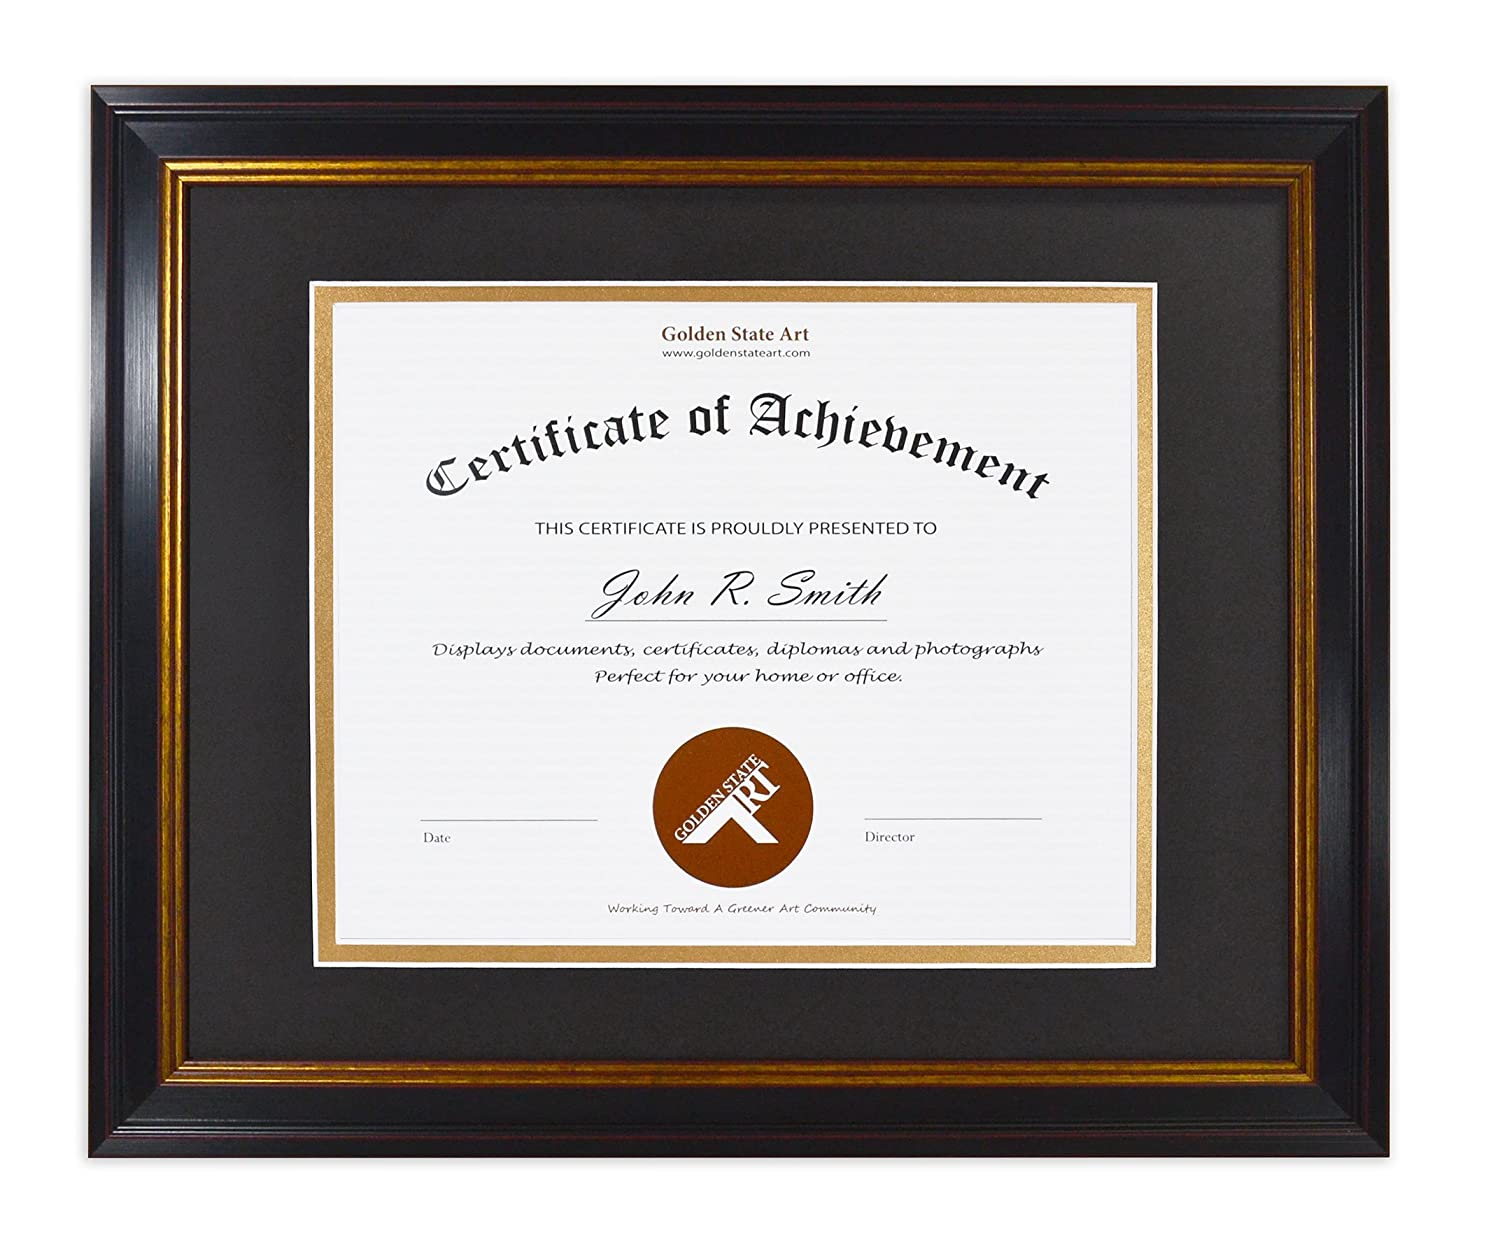 Golden State Art 11x14 Frame for 8x10 Diploma/Certificate, Black Gold & Burgundy color. Includes Black Over Gold Double Mat and Real Glass